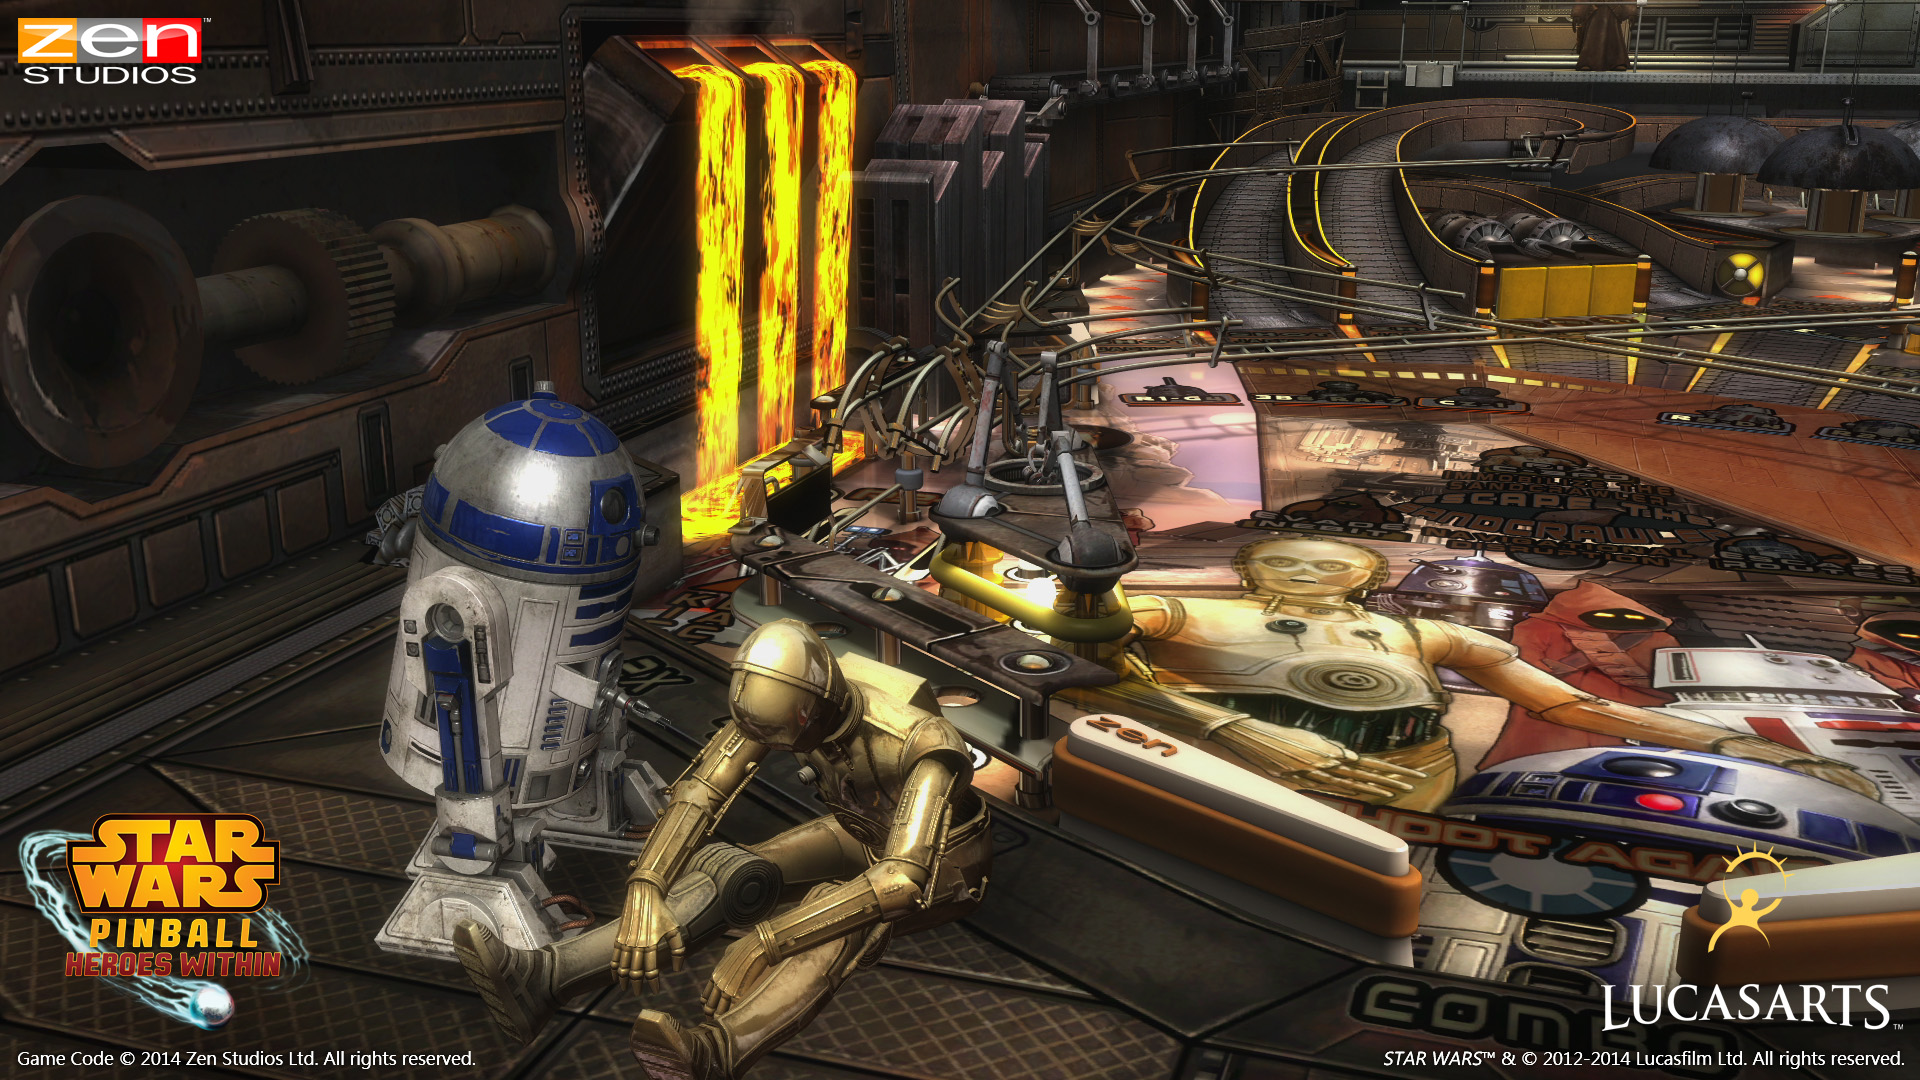 Star Wars Pinball is getting even more Star Wars-ier with some new themed tables for iOS, Android, and Vita